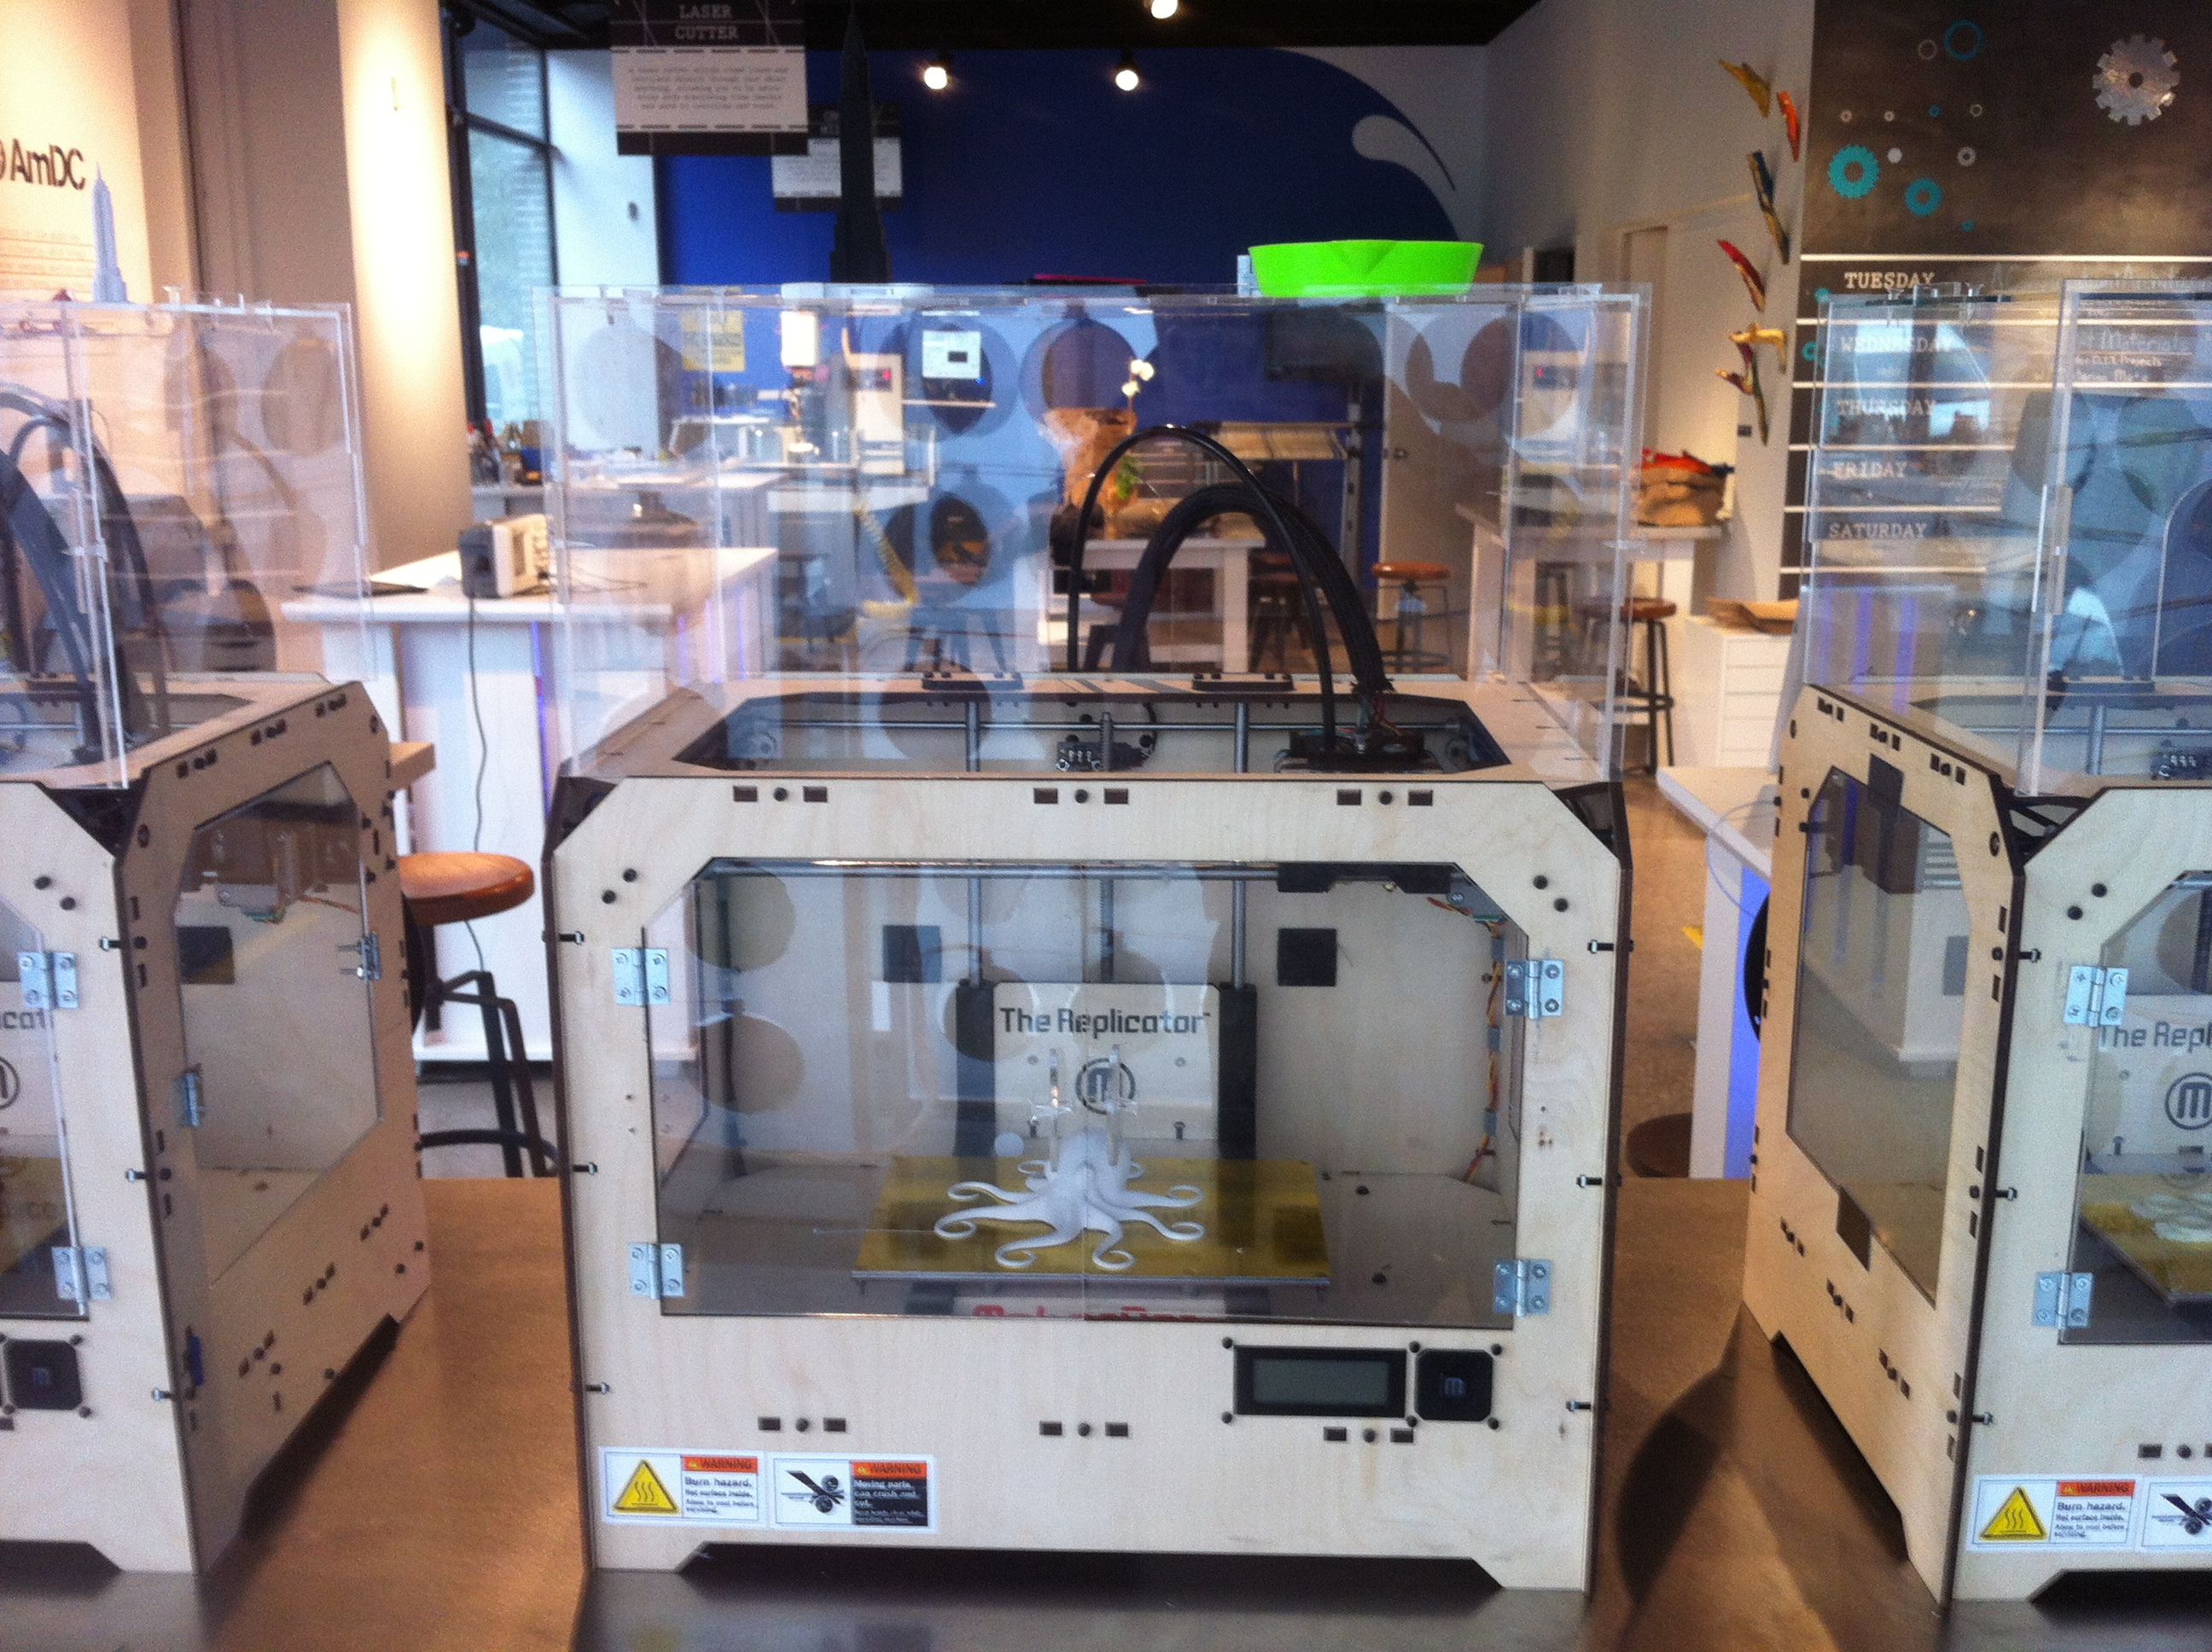 Story, GE 3D printer, The Myndset Digital marketing and brand strategy